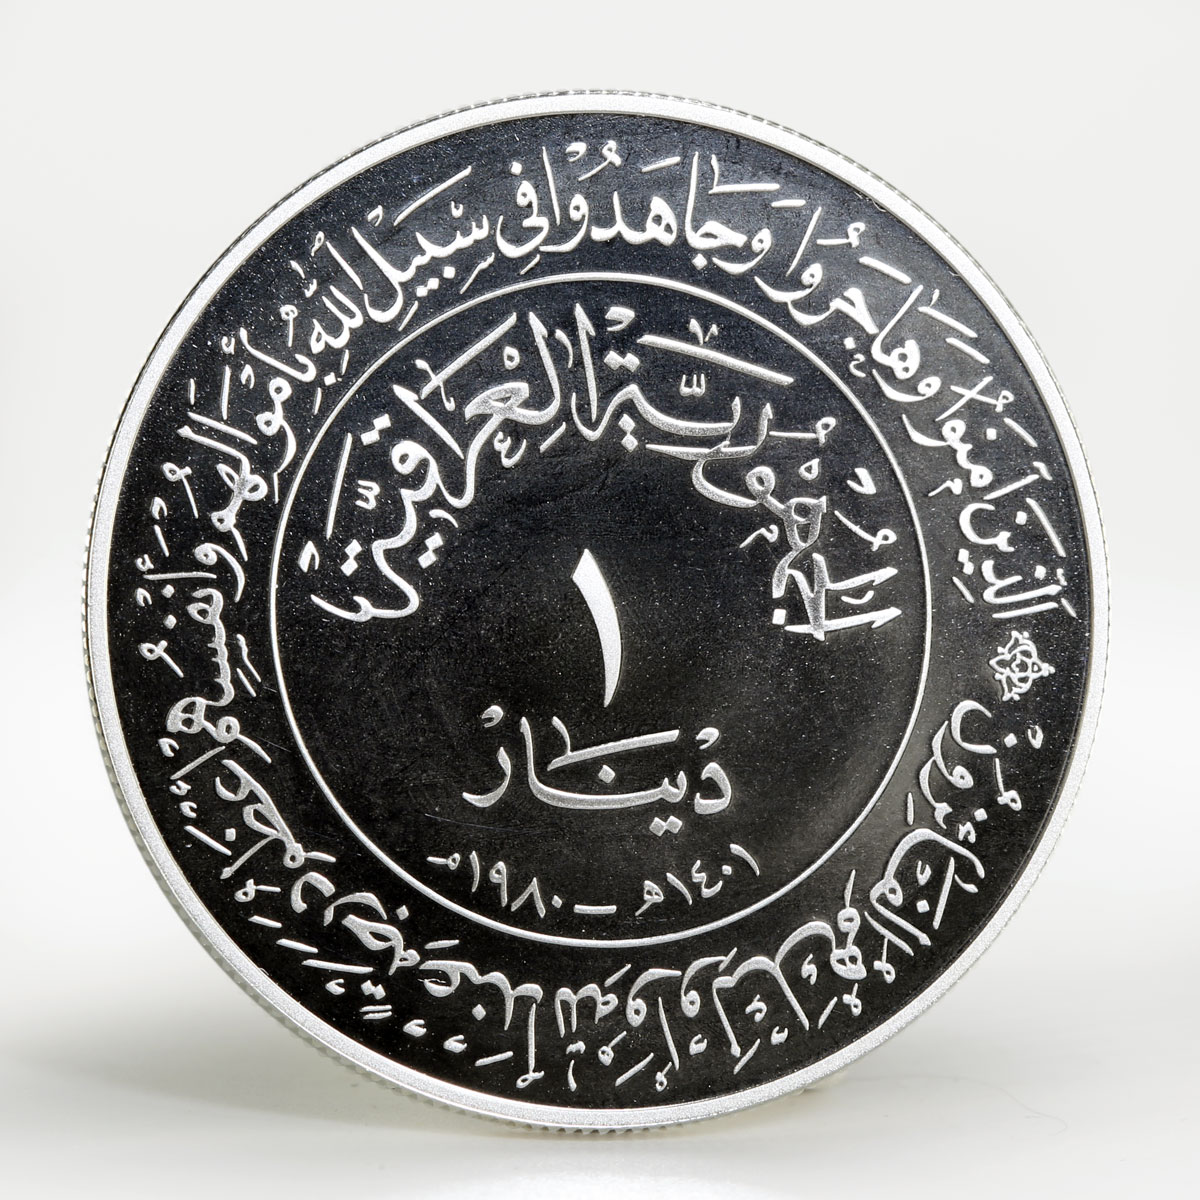 Iraq 1 dinar 1400th Anniversary of Hijra silver coin 1980